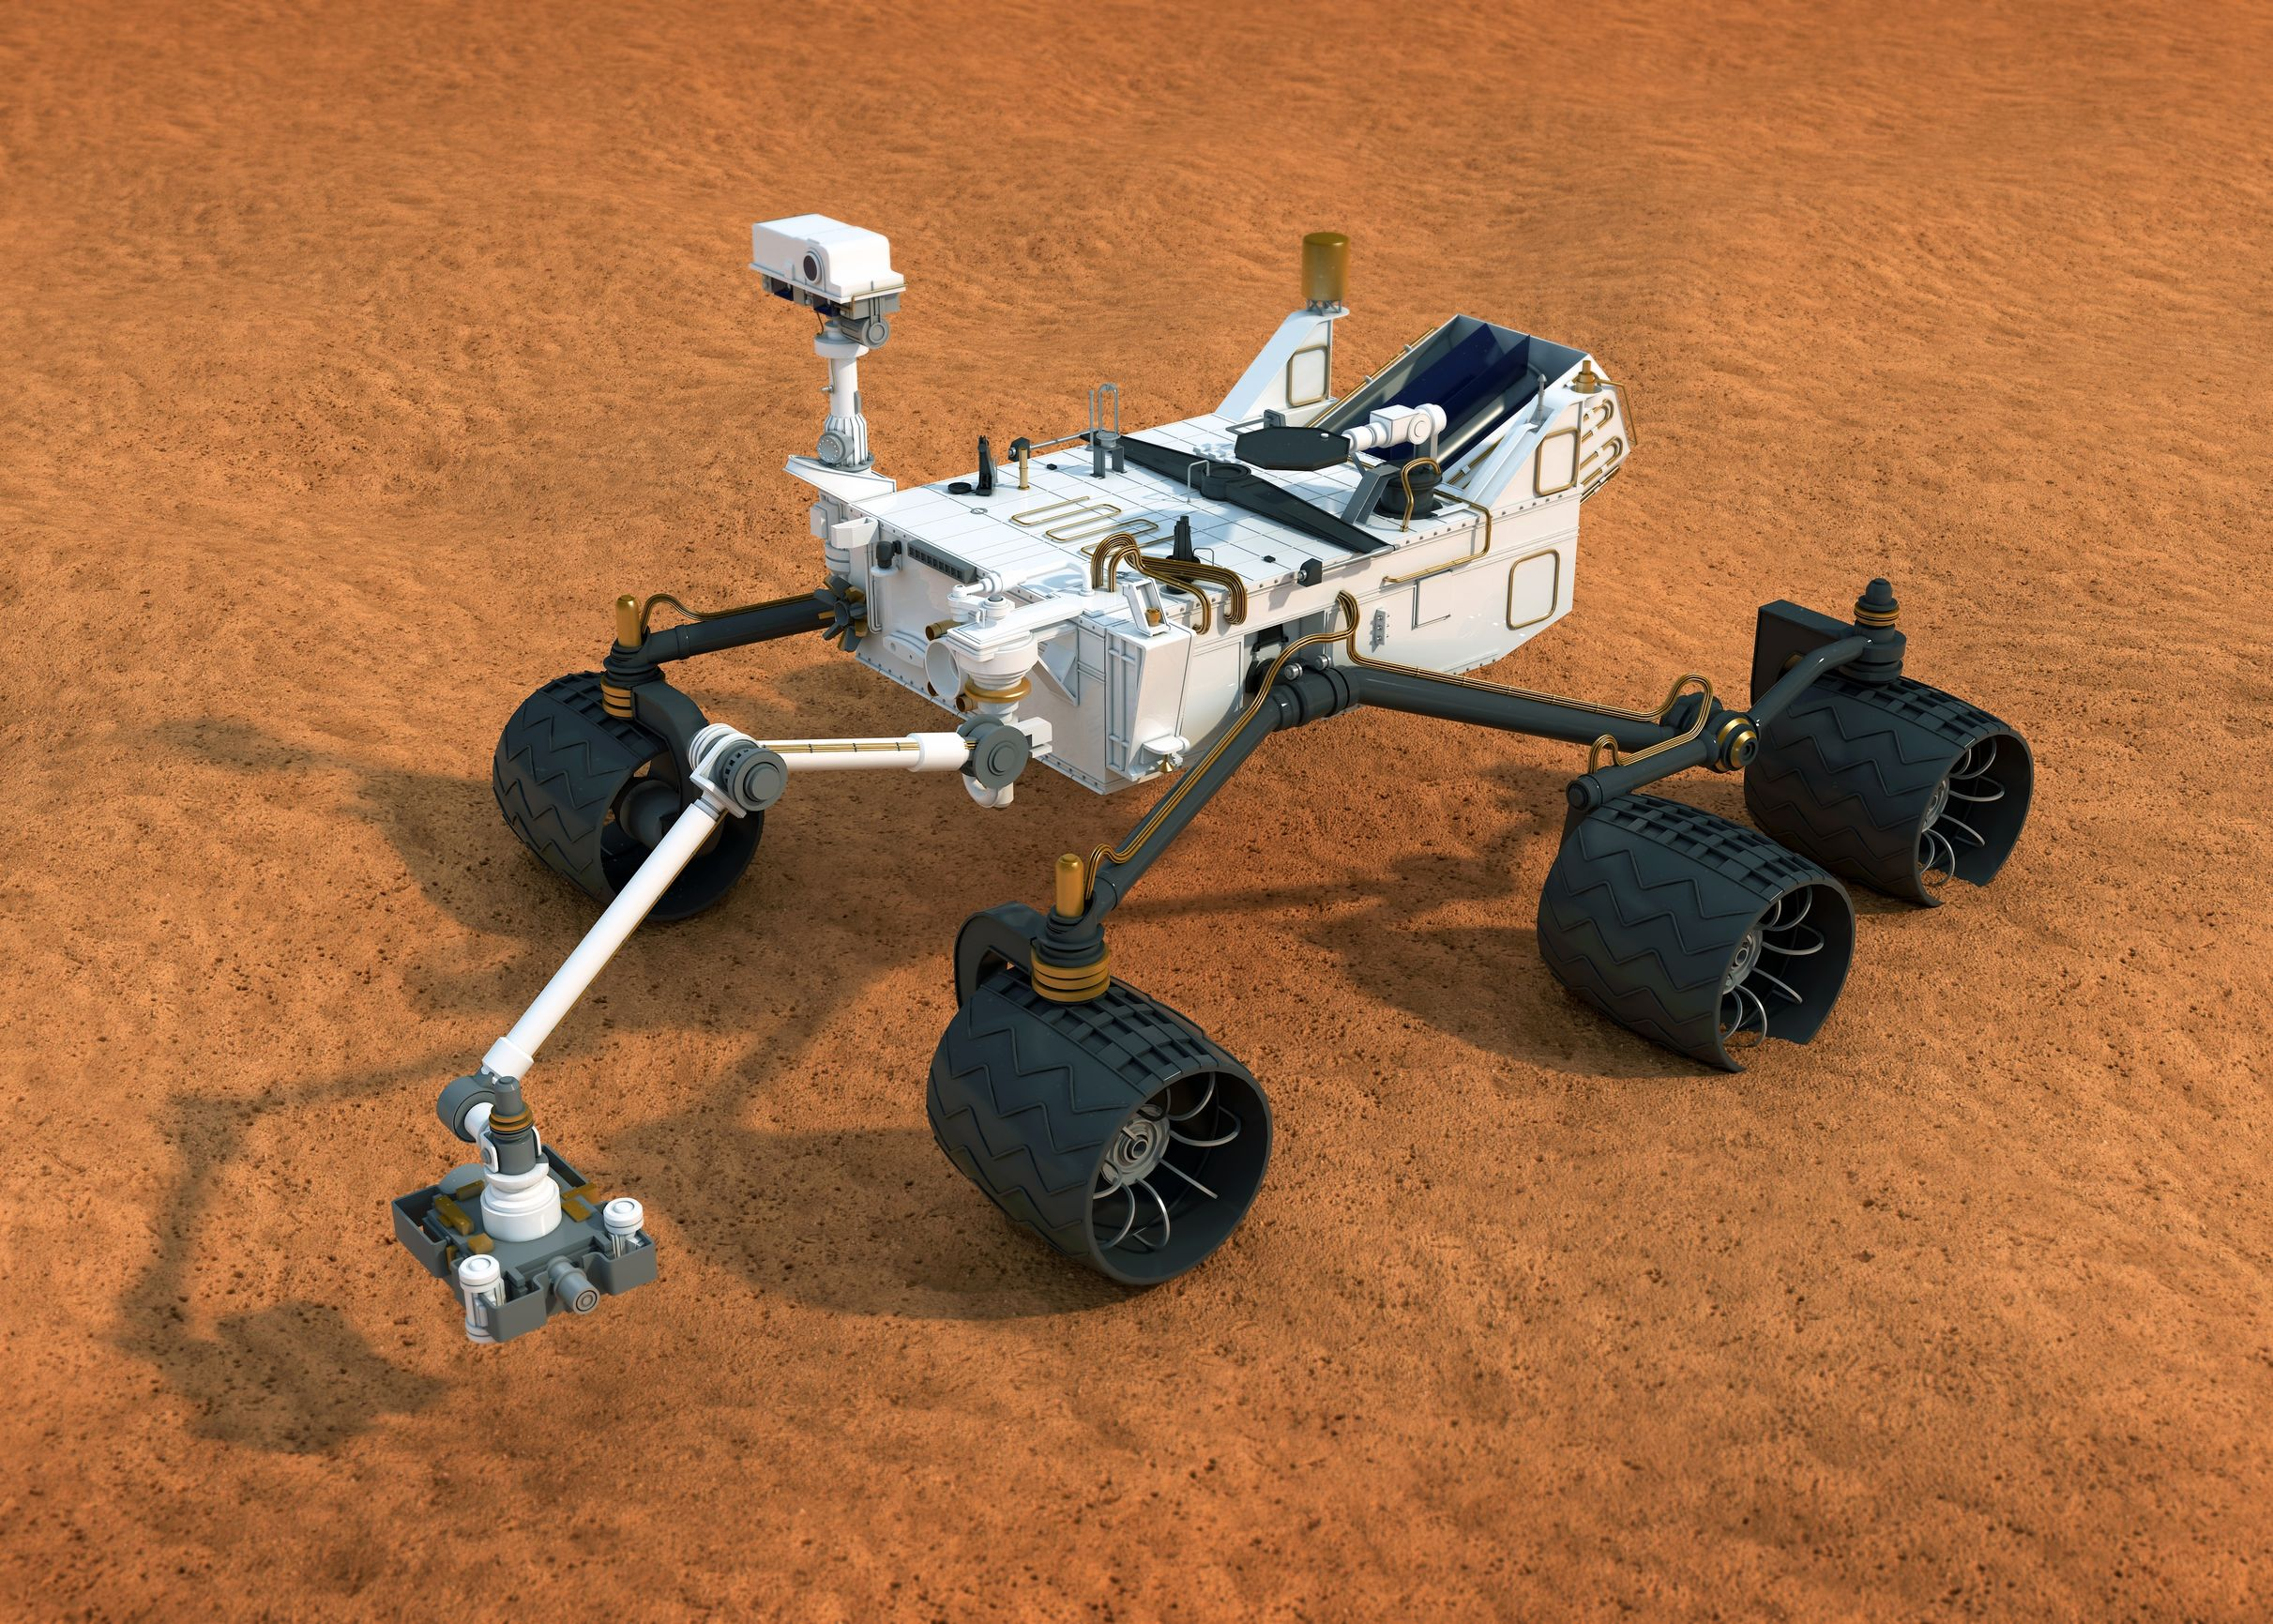 The Curiosity rover is going to look for water on Mars